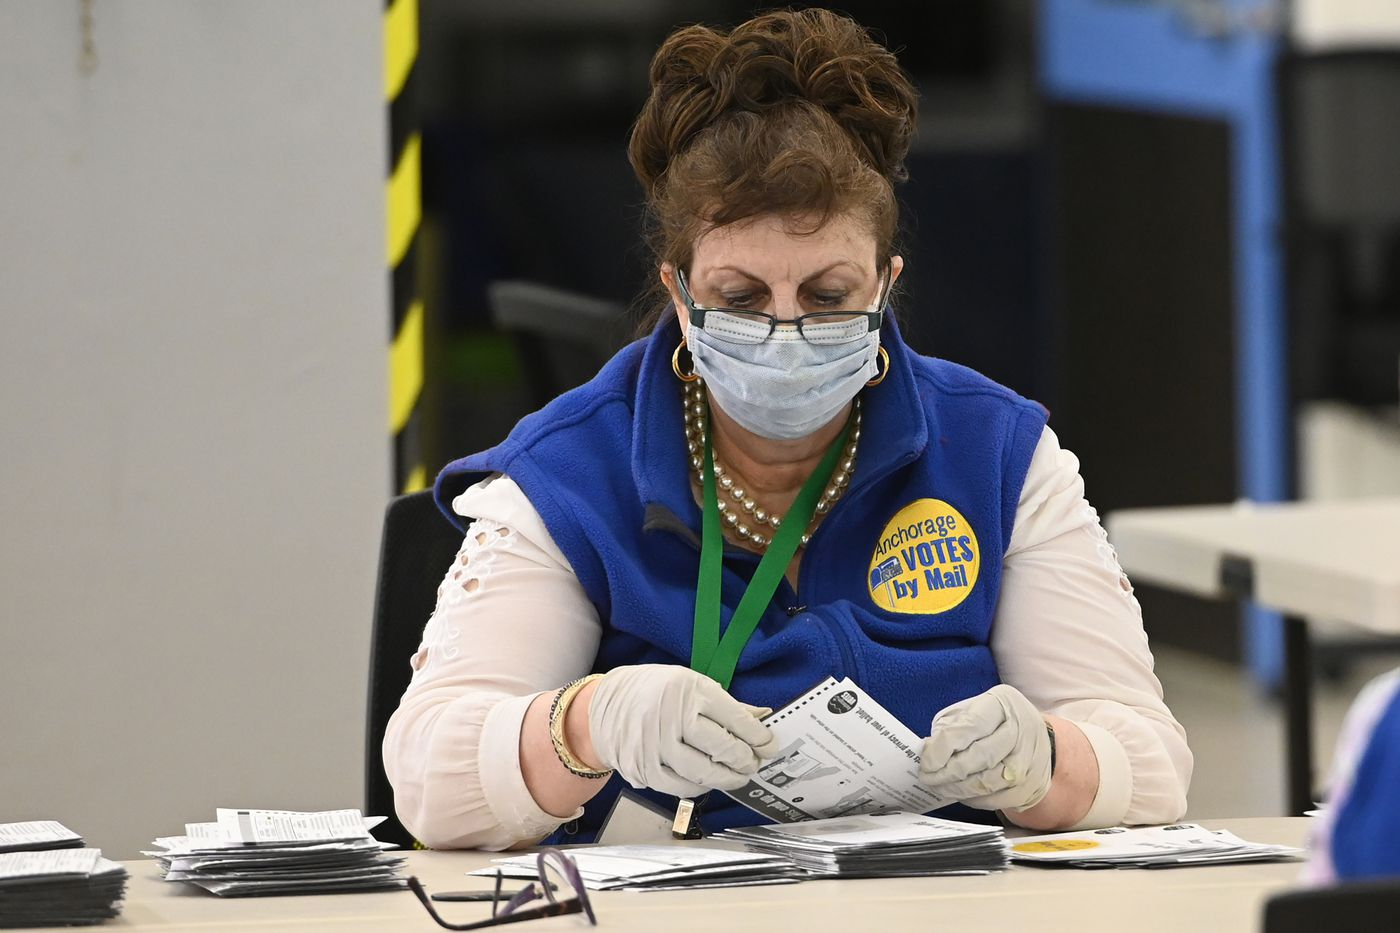 Election worker Jean Sondrud wore a mask while processing ballots at the MOA Election Center during the regular municipal election on Tuesday, April 7, 2020. (Bill Roth / ADN)